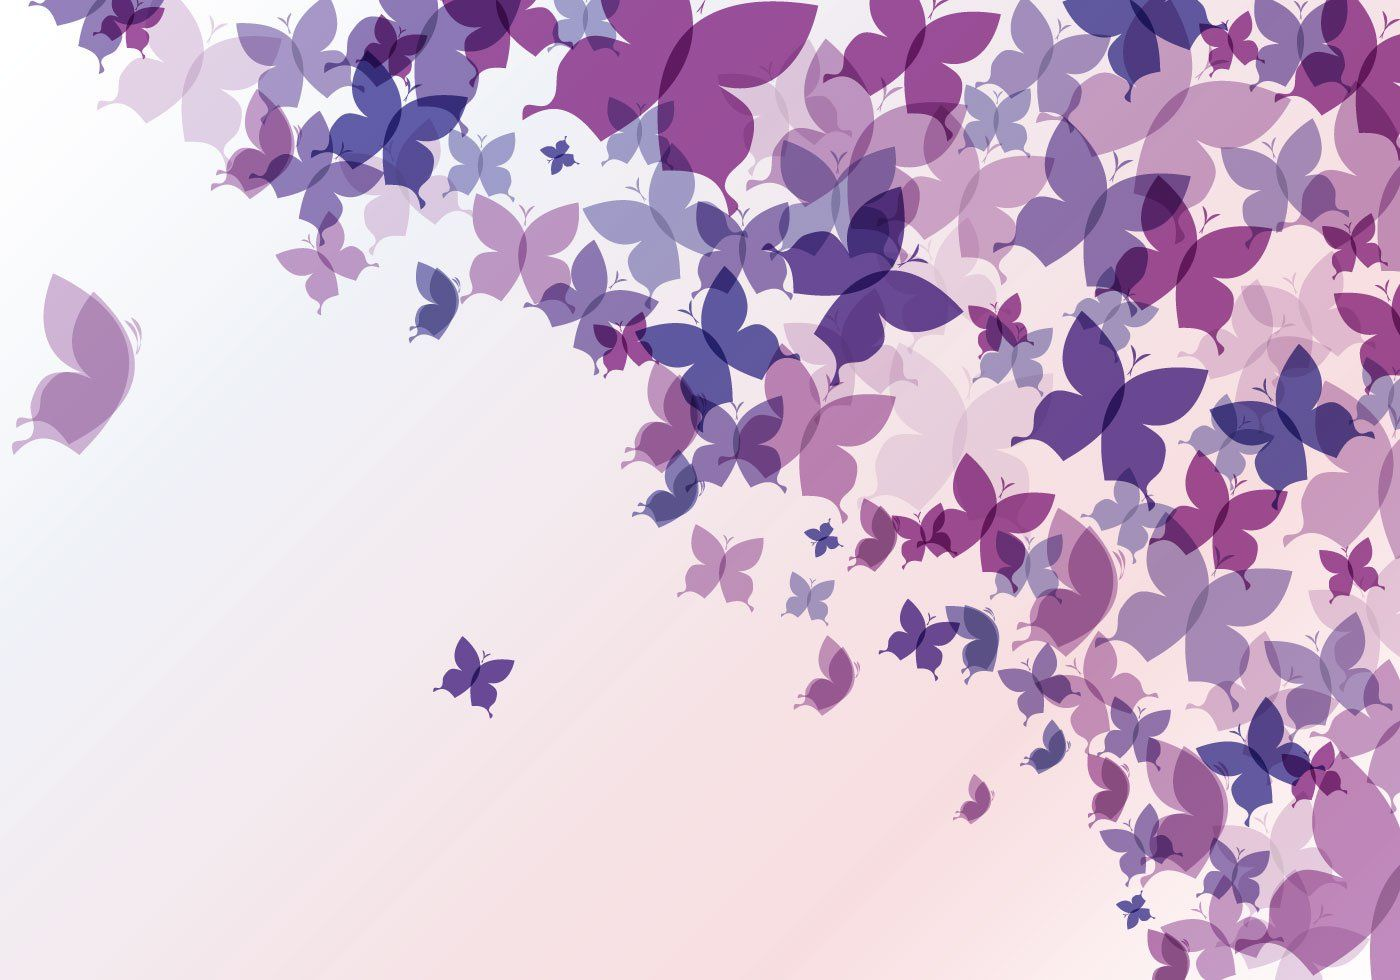 Butterfly Wallpaper Abstract Butterfly Background Download Free Vector Art Butterfly Background Butterfly Wallpaper Purple Butterfly Wallpaper